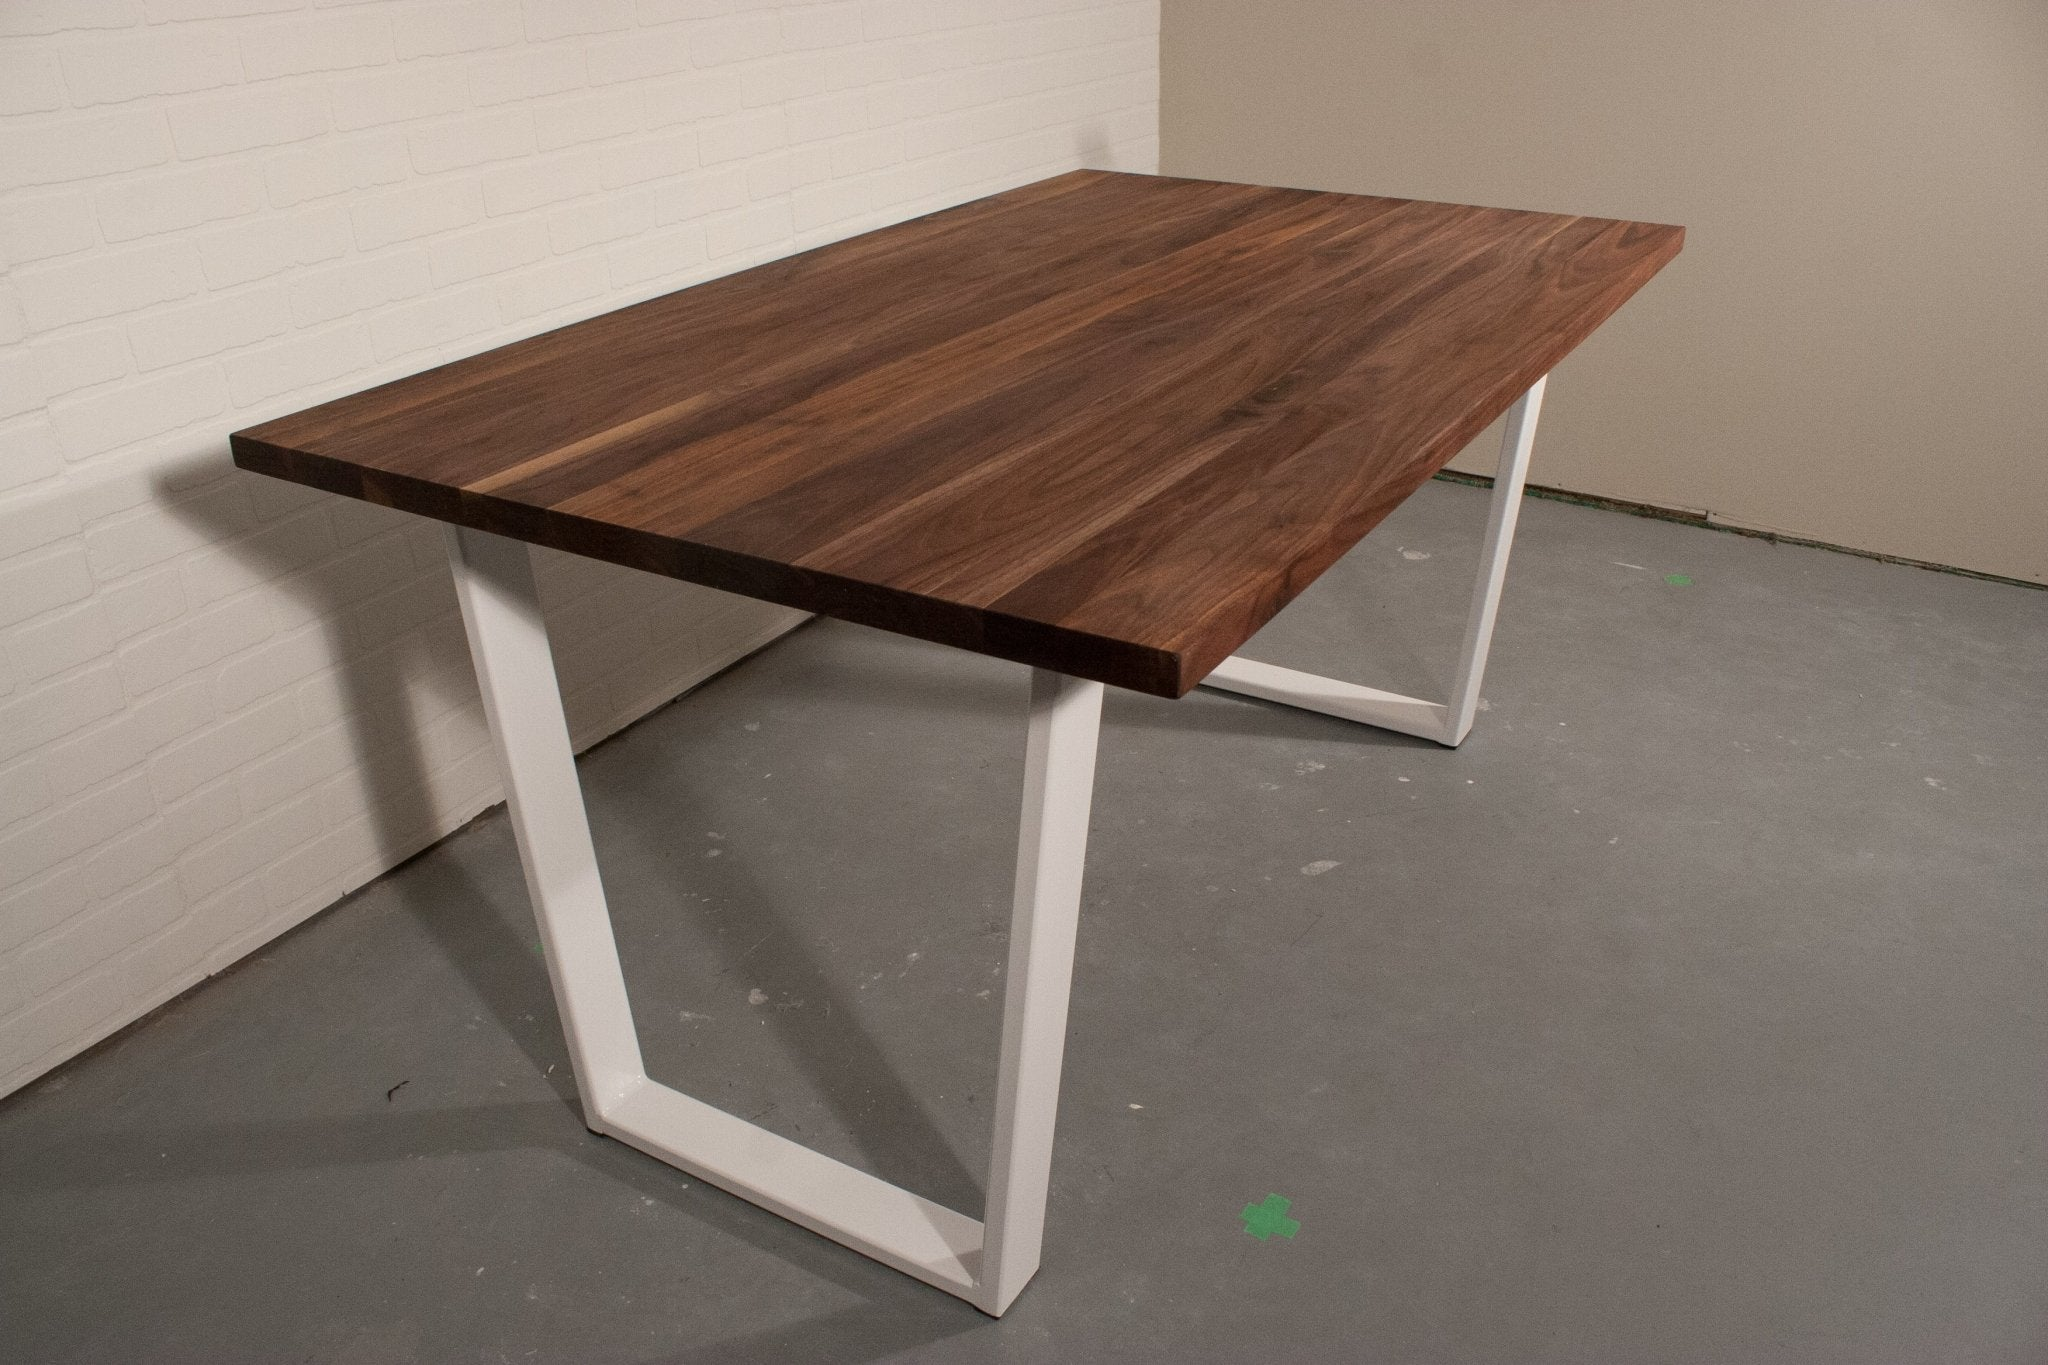 Walnut Dining Table on White Steel Legs - Loewen Design Studios